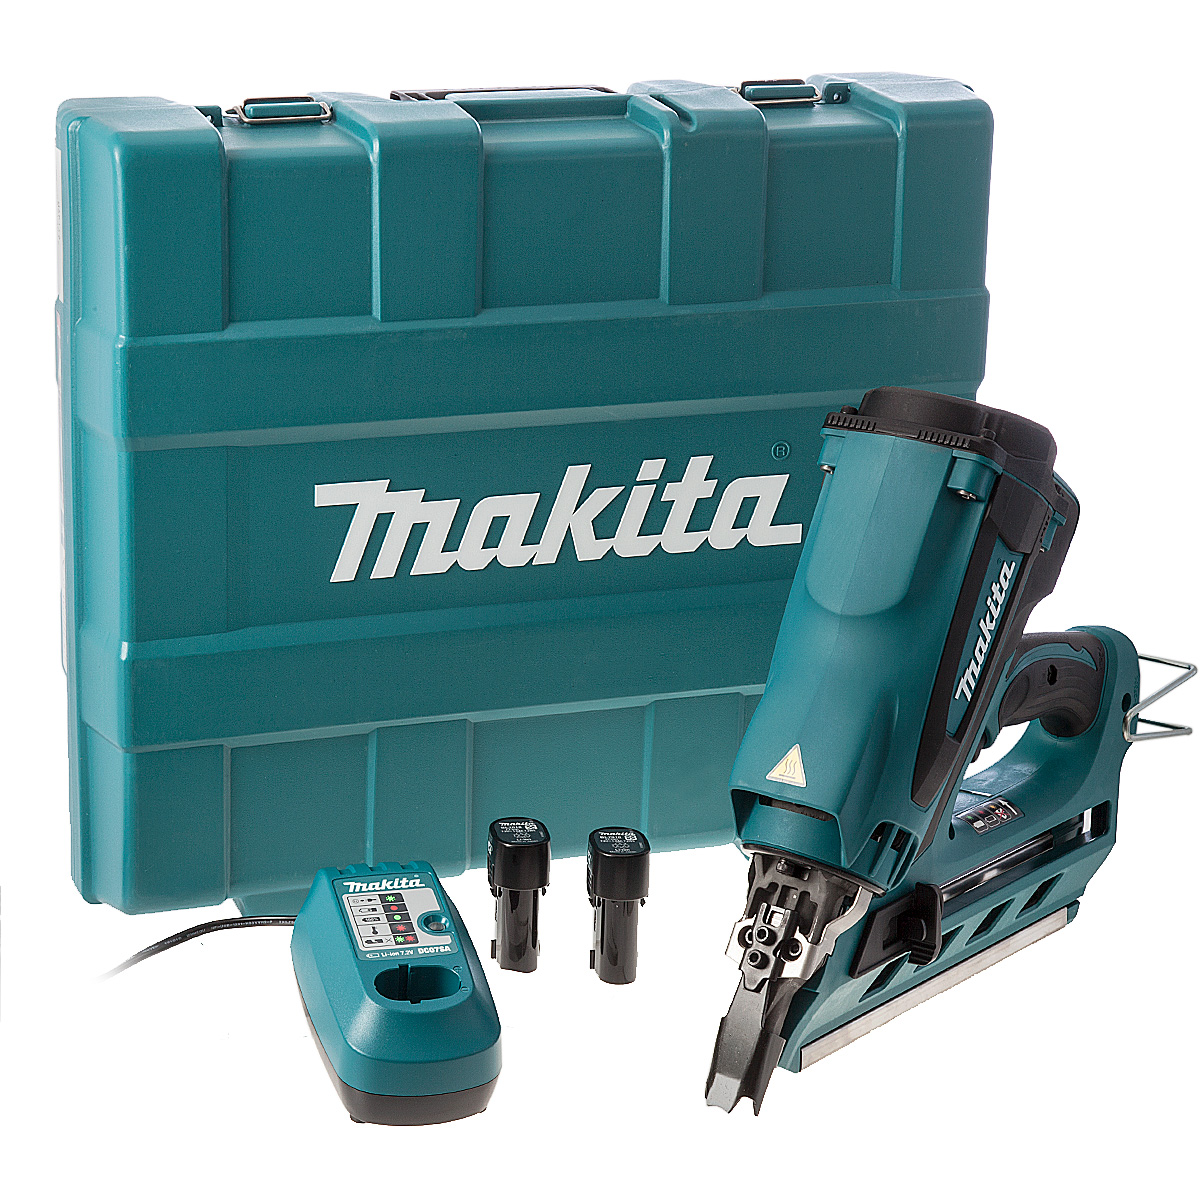 MAKITA 7.2V 1ST FIX FRAMING GAS NAIL GUN - GN900SE